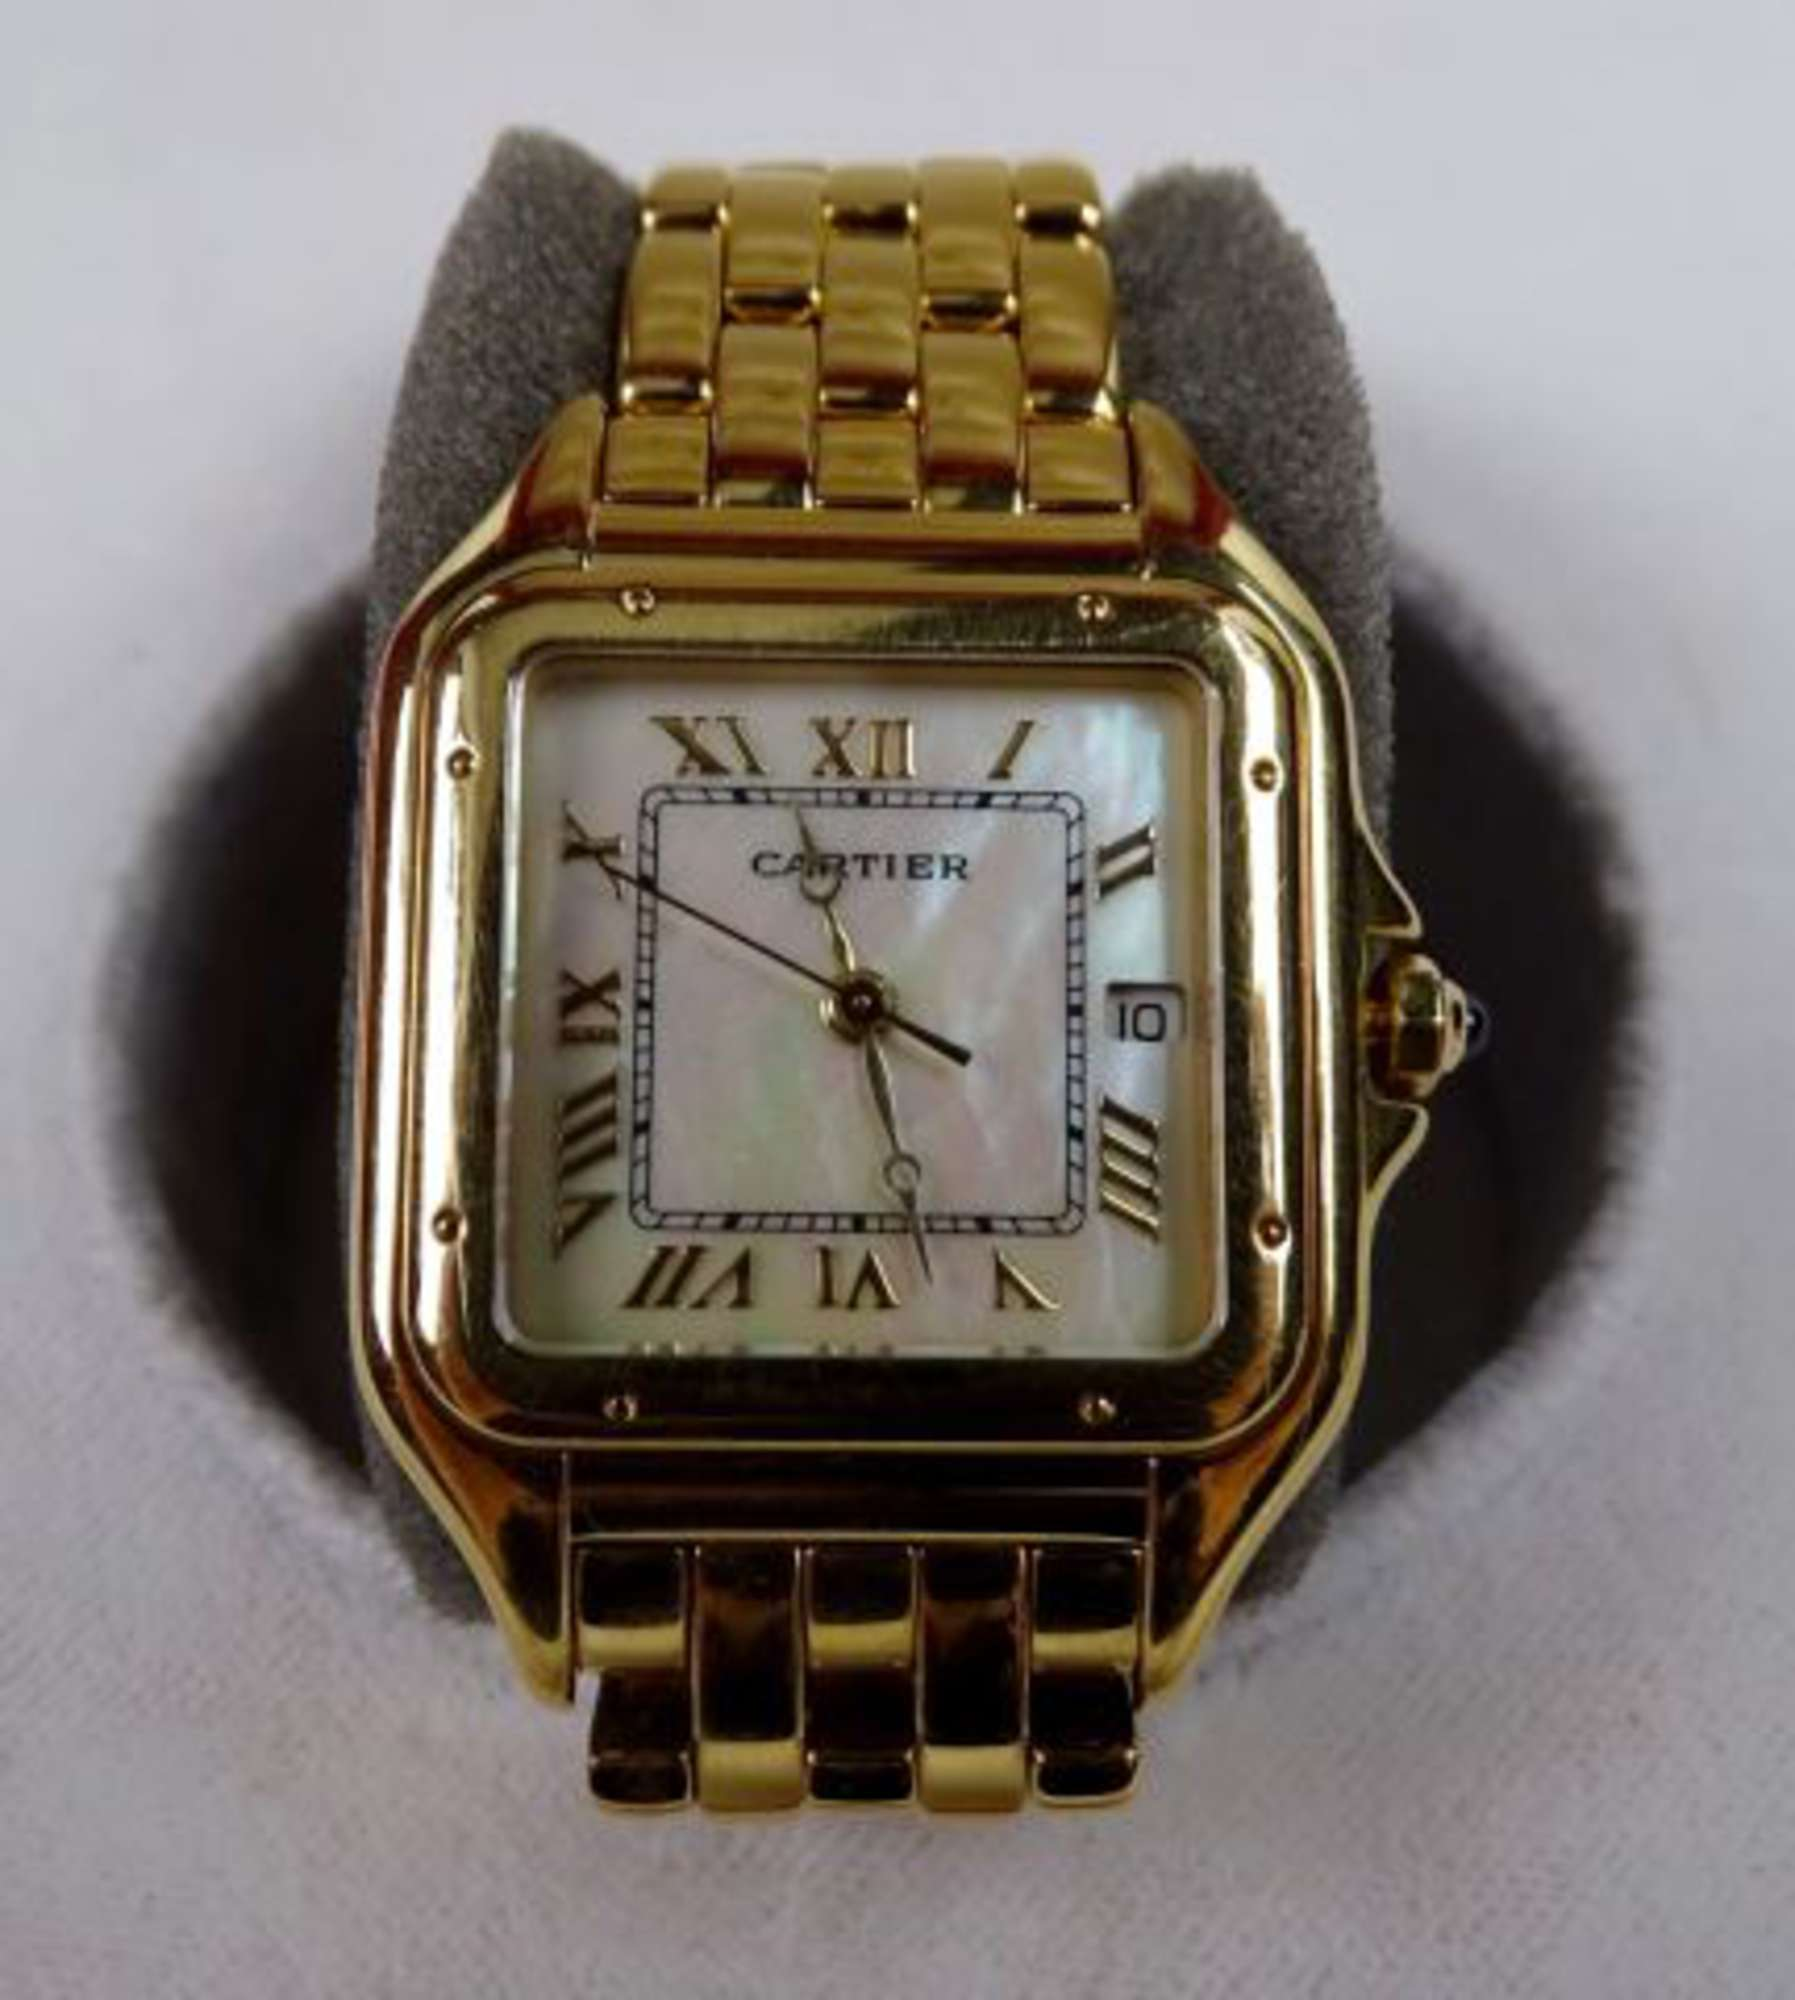 cartier must de montre bracelet de dame en or jaune 18k 750 00 boitier carr couronne de. Black Bedroom Furniture Sets. Home Design Ideas